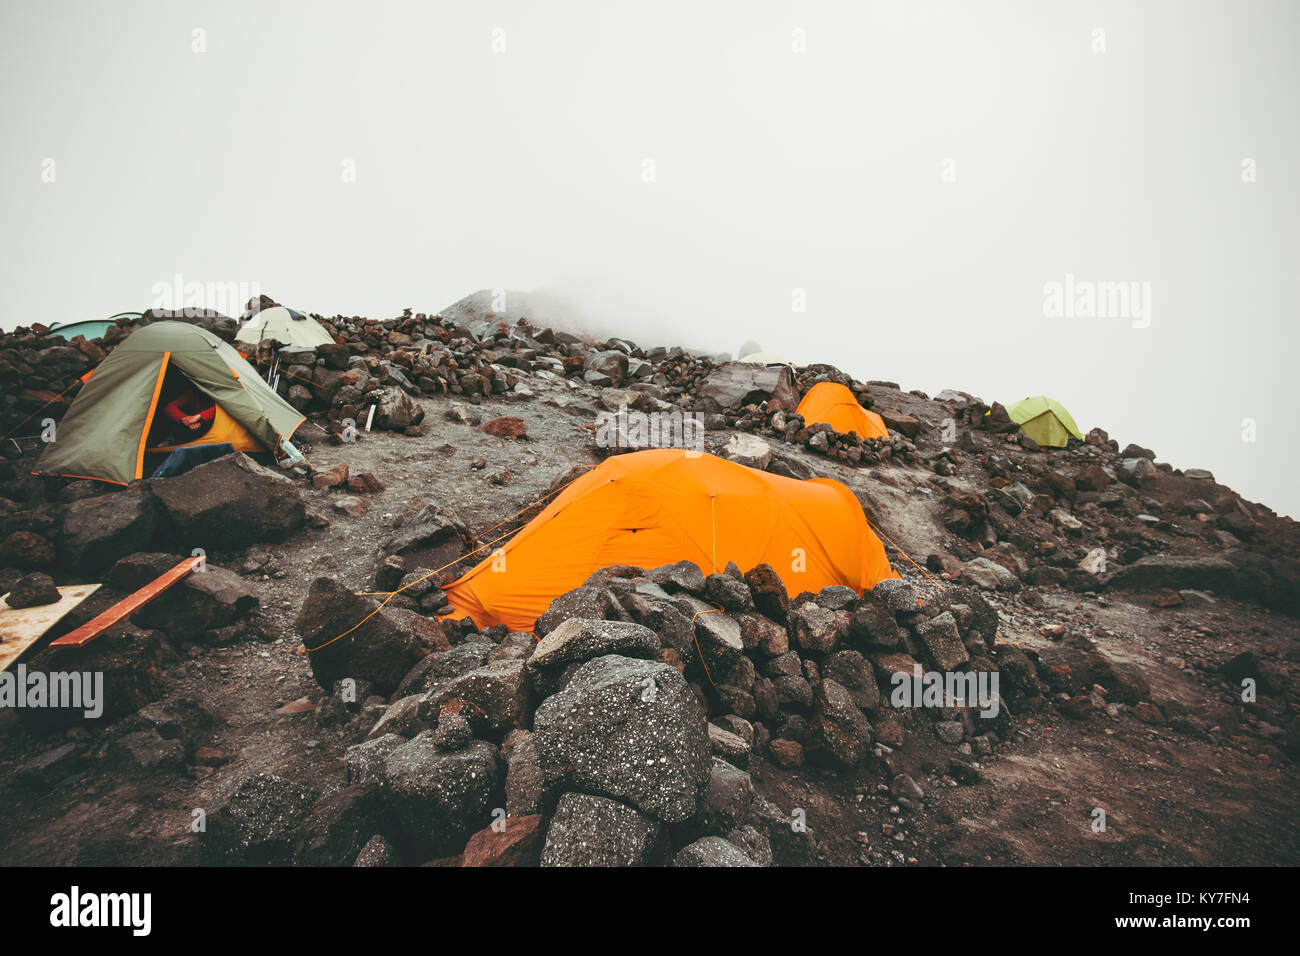 Camping tents in foggy Mountains Landscape Travel Lifestyle concept Summer adventure vacations outdoor - Stock Image